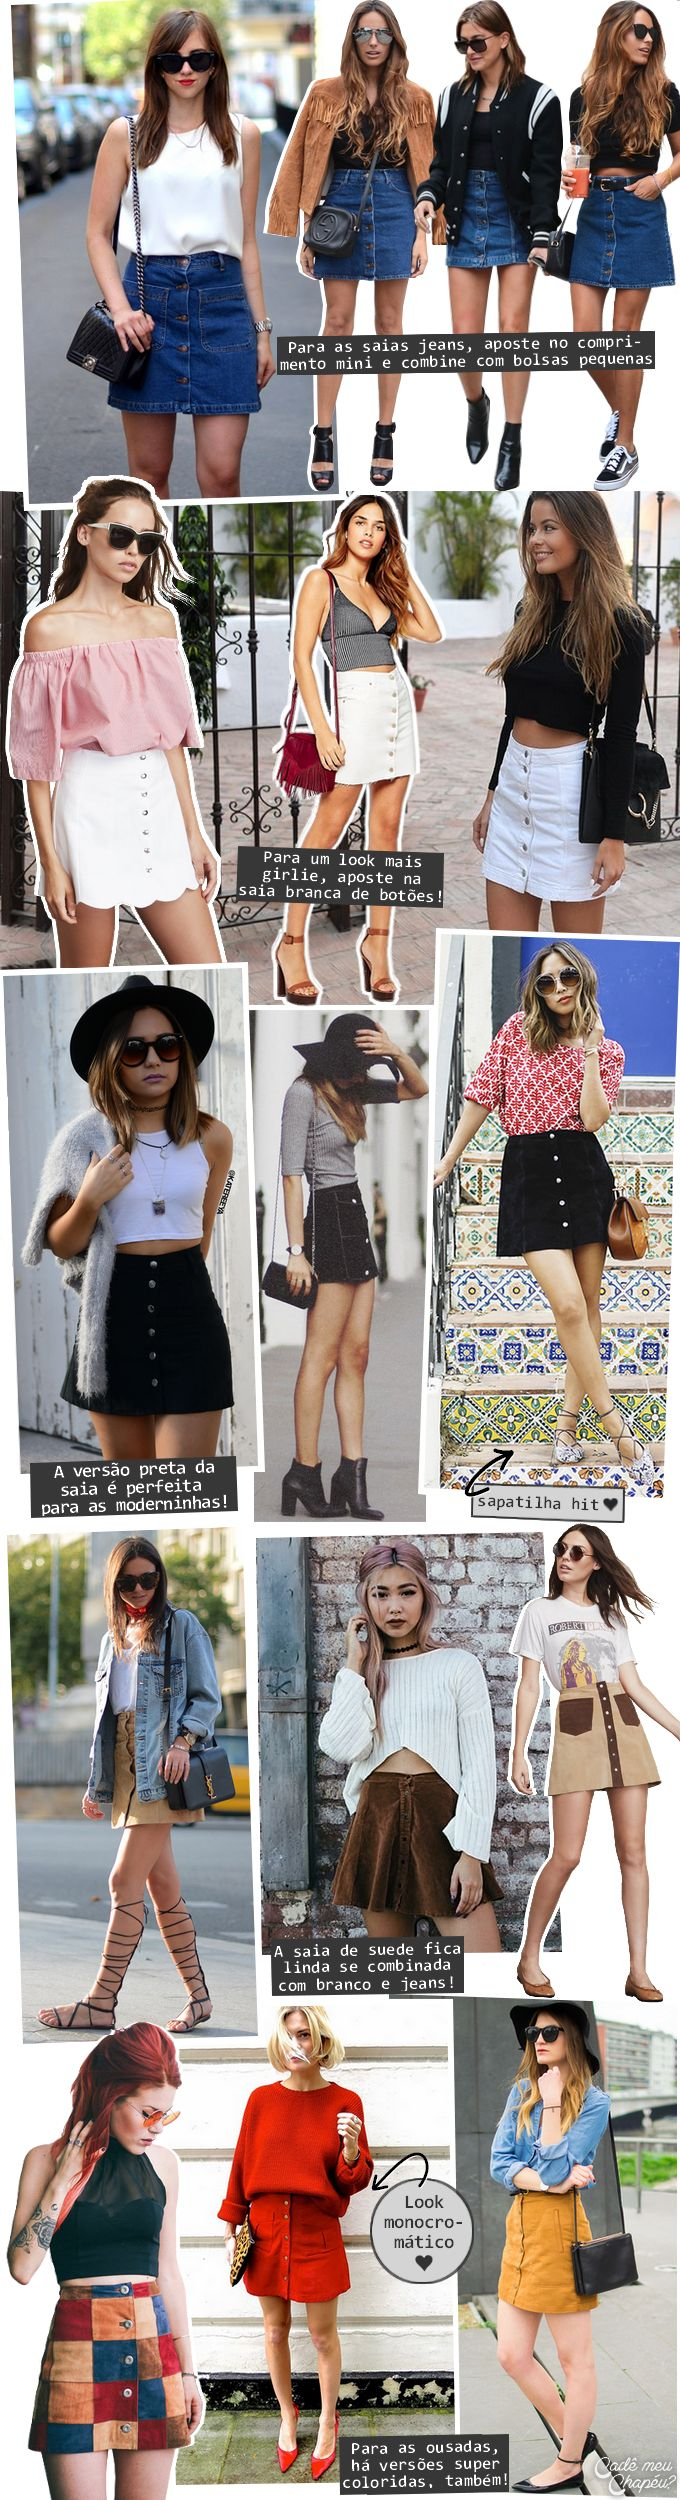 Button skirt | Button down skirt | Saia de botões | Suede skirt | http://cademeuchapeu.com